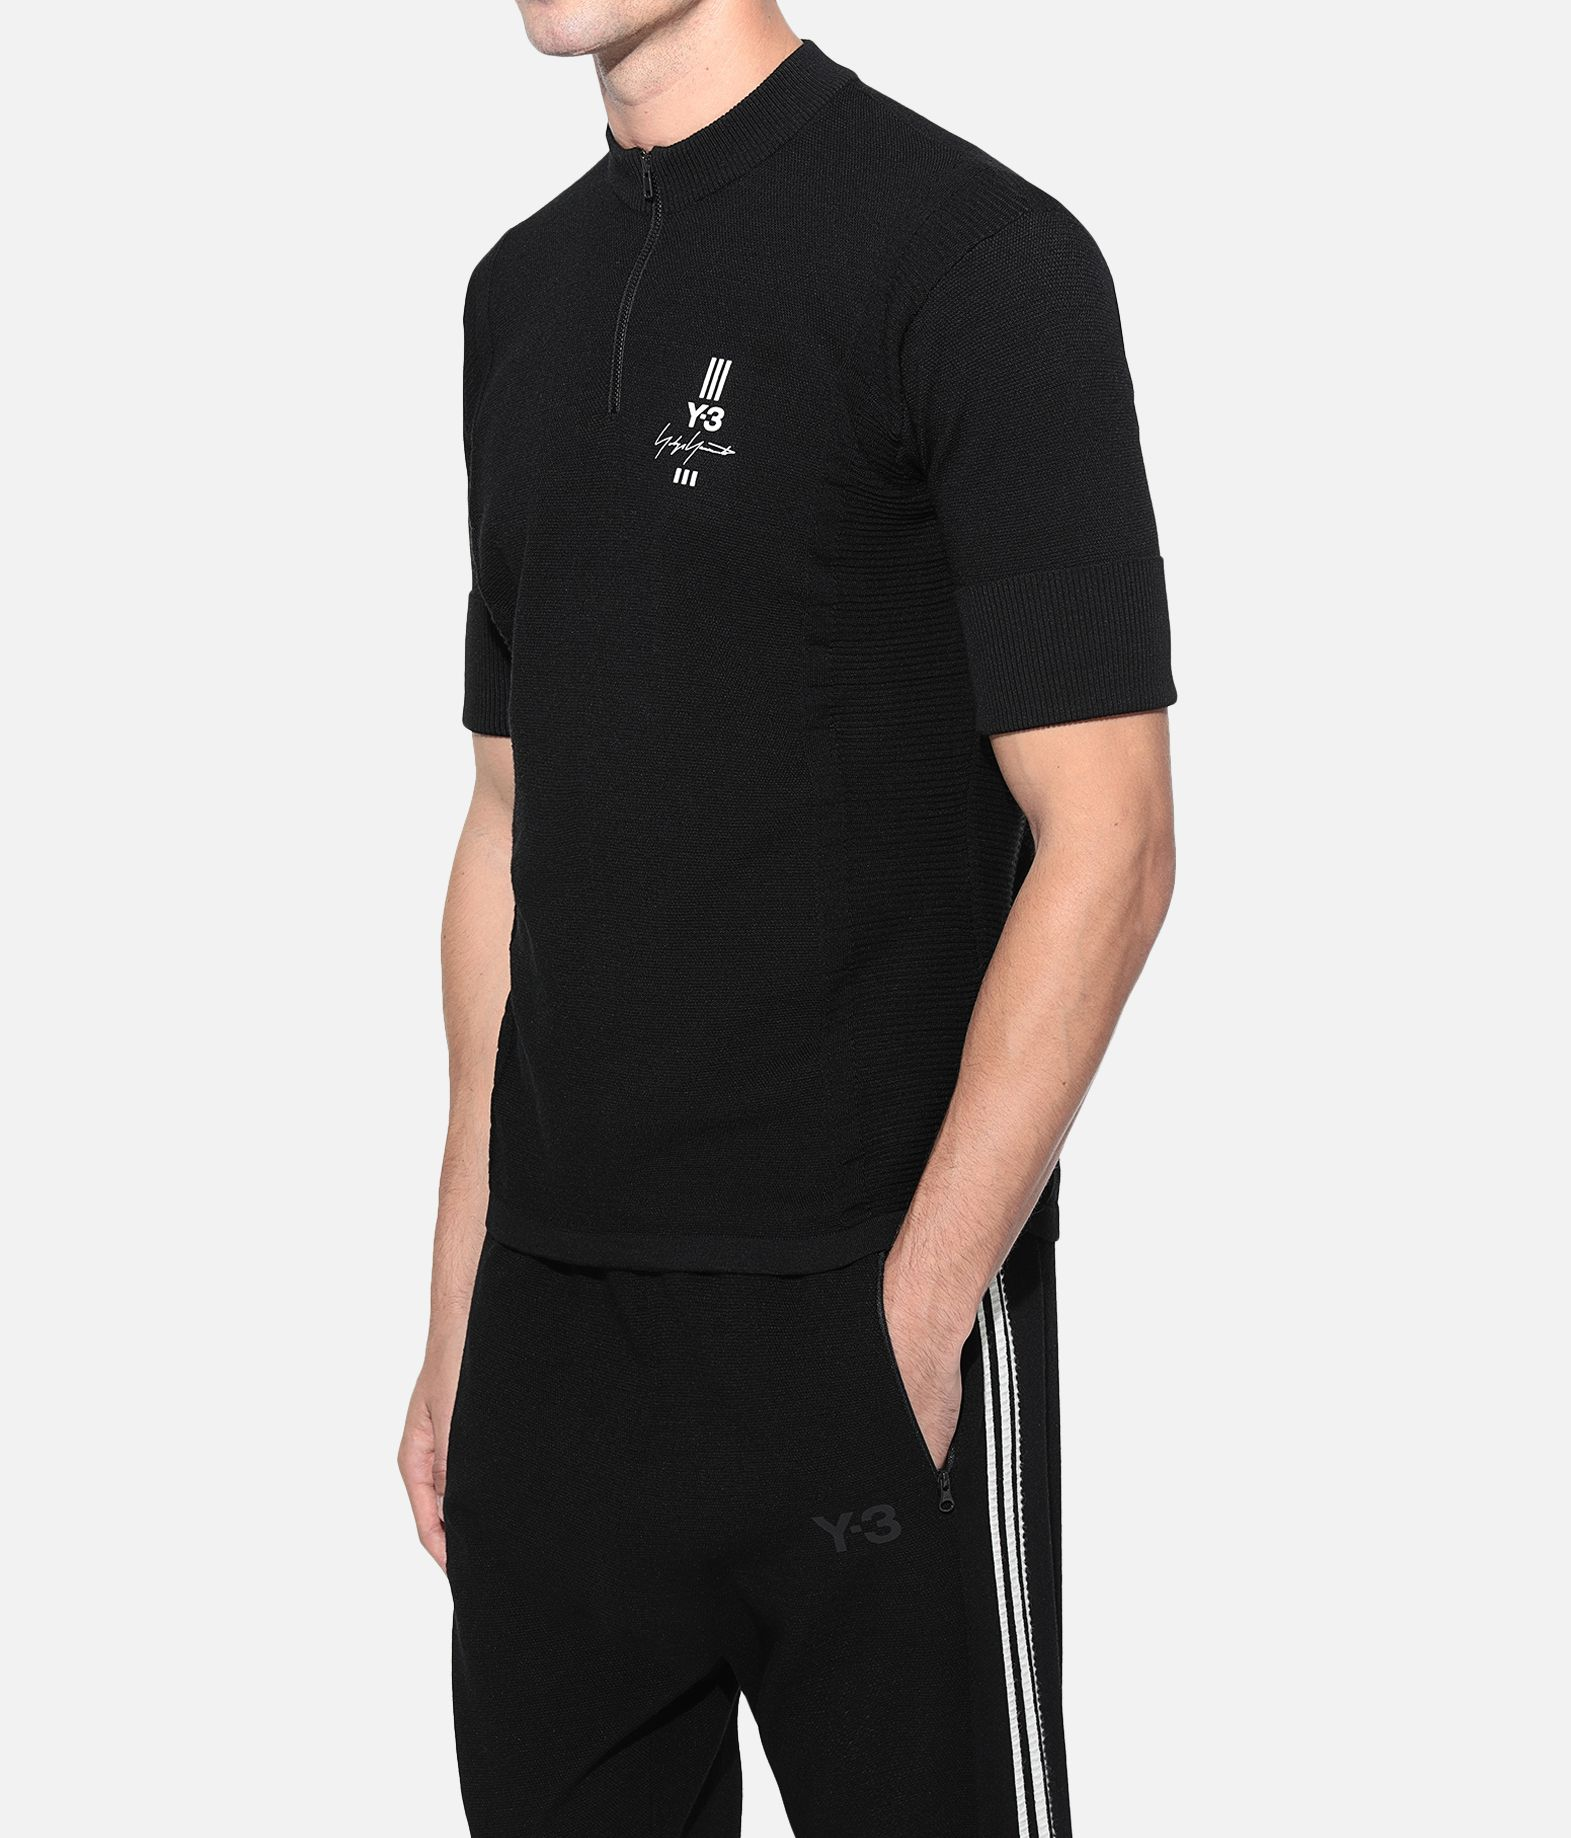 Y-3 Y-3 Knit Tee Short sleeve t-shirt Man e